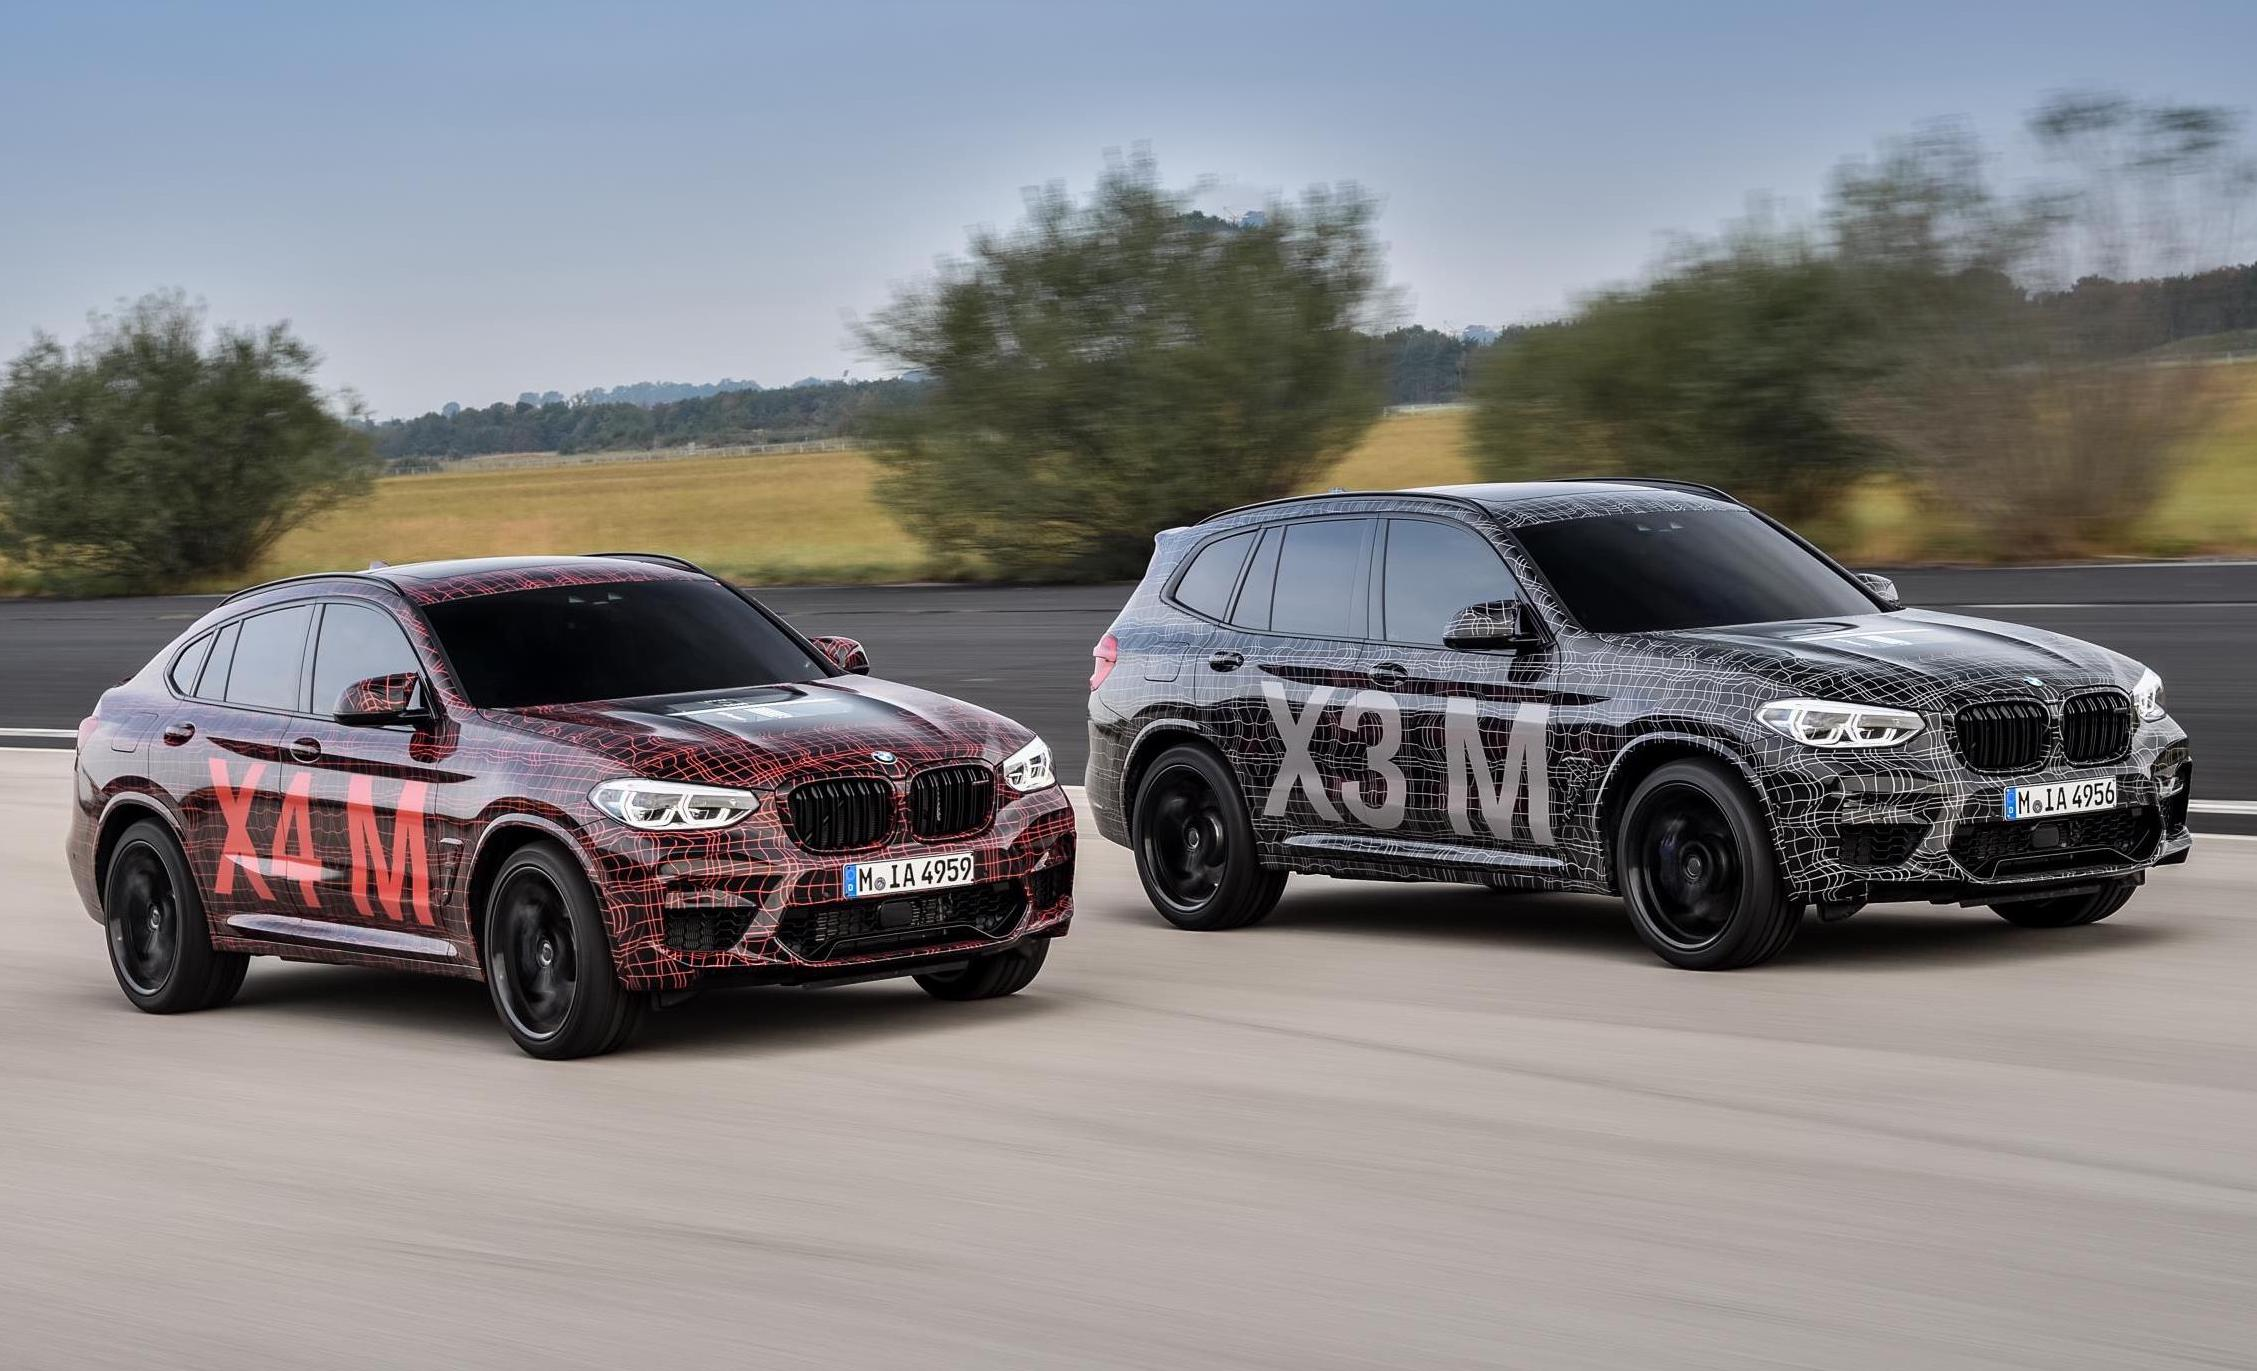 10 Amazing New Cars Coming In 2019 2020 Best Upcoming: Top 10 Best SUVs Coming To Australia In 2019-2020